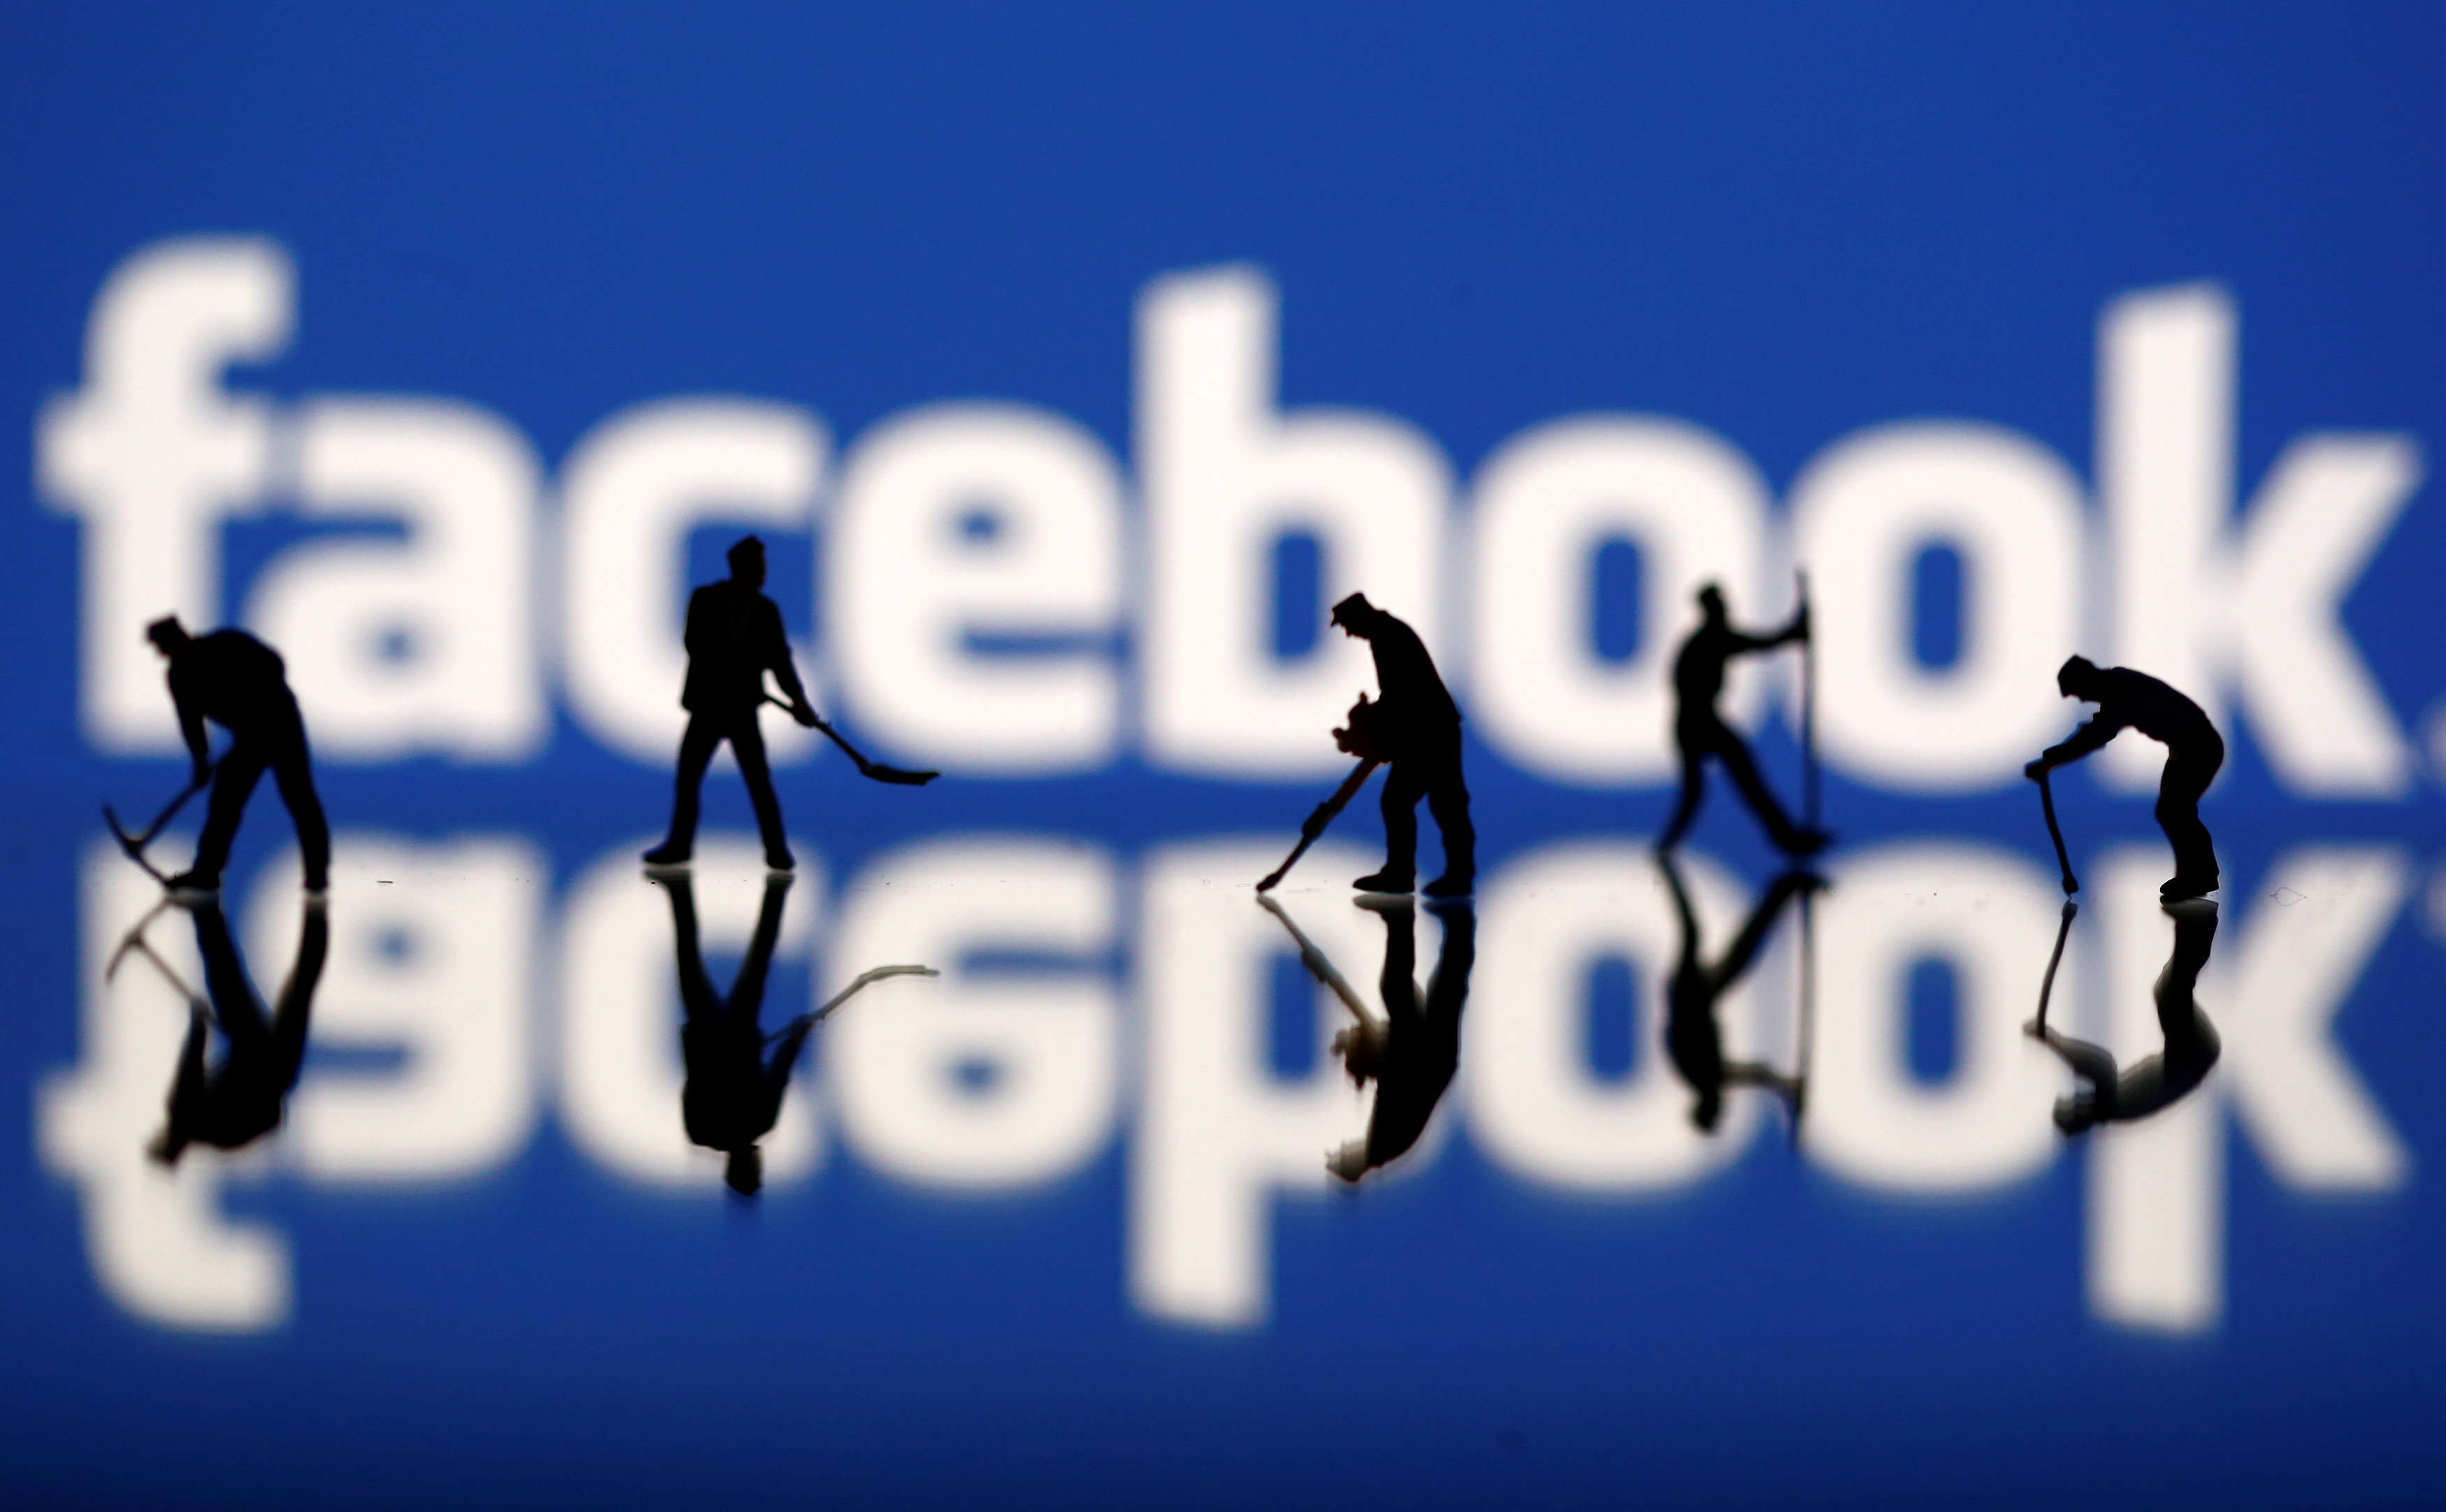 FILE PHOTO: Figurines are seen in front of the Facebook logo in this illustration taken March 20, 2018. REUTERS/Dado Ruvic